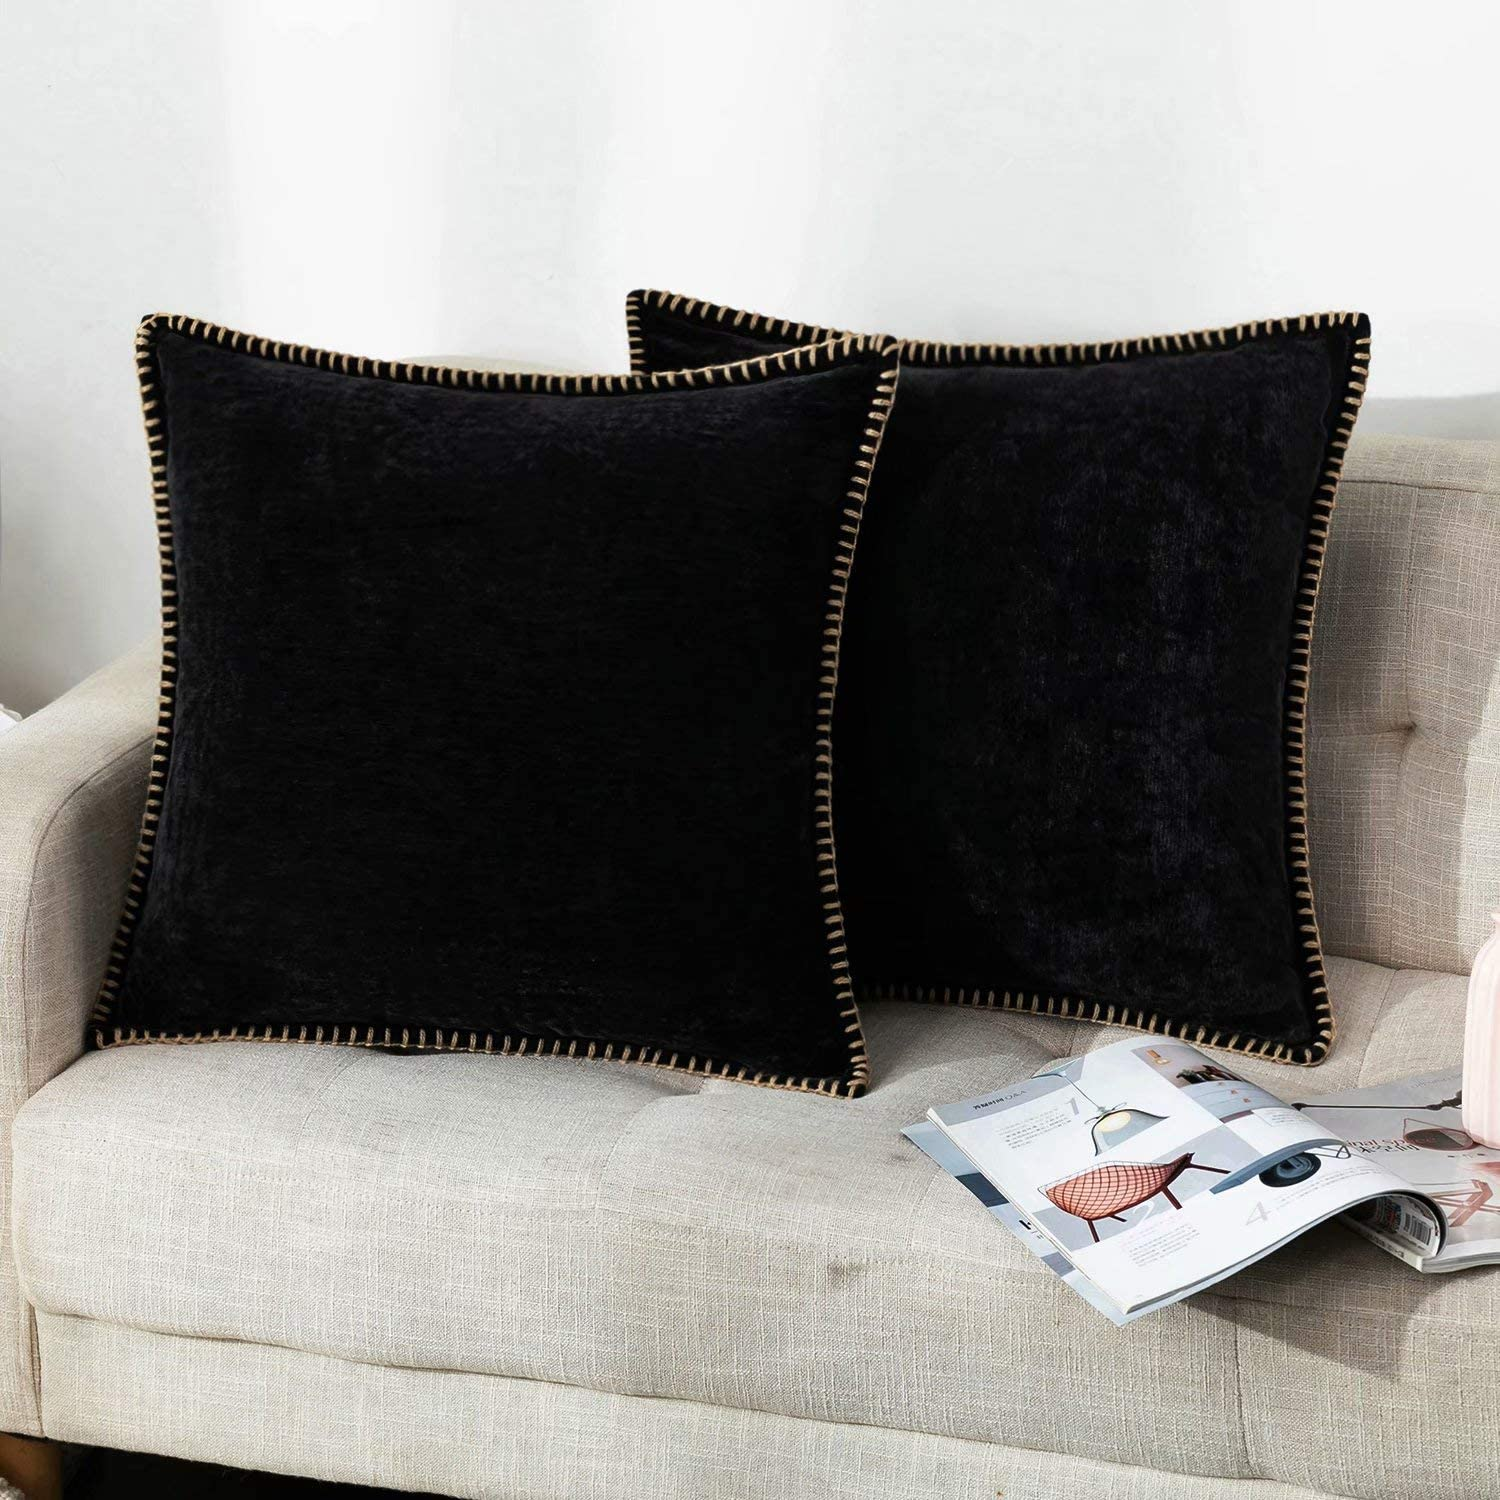 Farmhouse Decorative Throw Pillow Covers Set of 2 Trimmed Edge Velvet Cushion Cases for Couch Living Room, Black, 16x16 inches, Insert Not Included